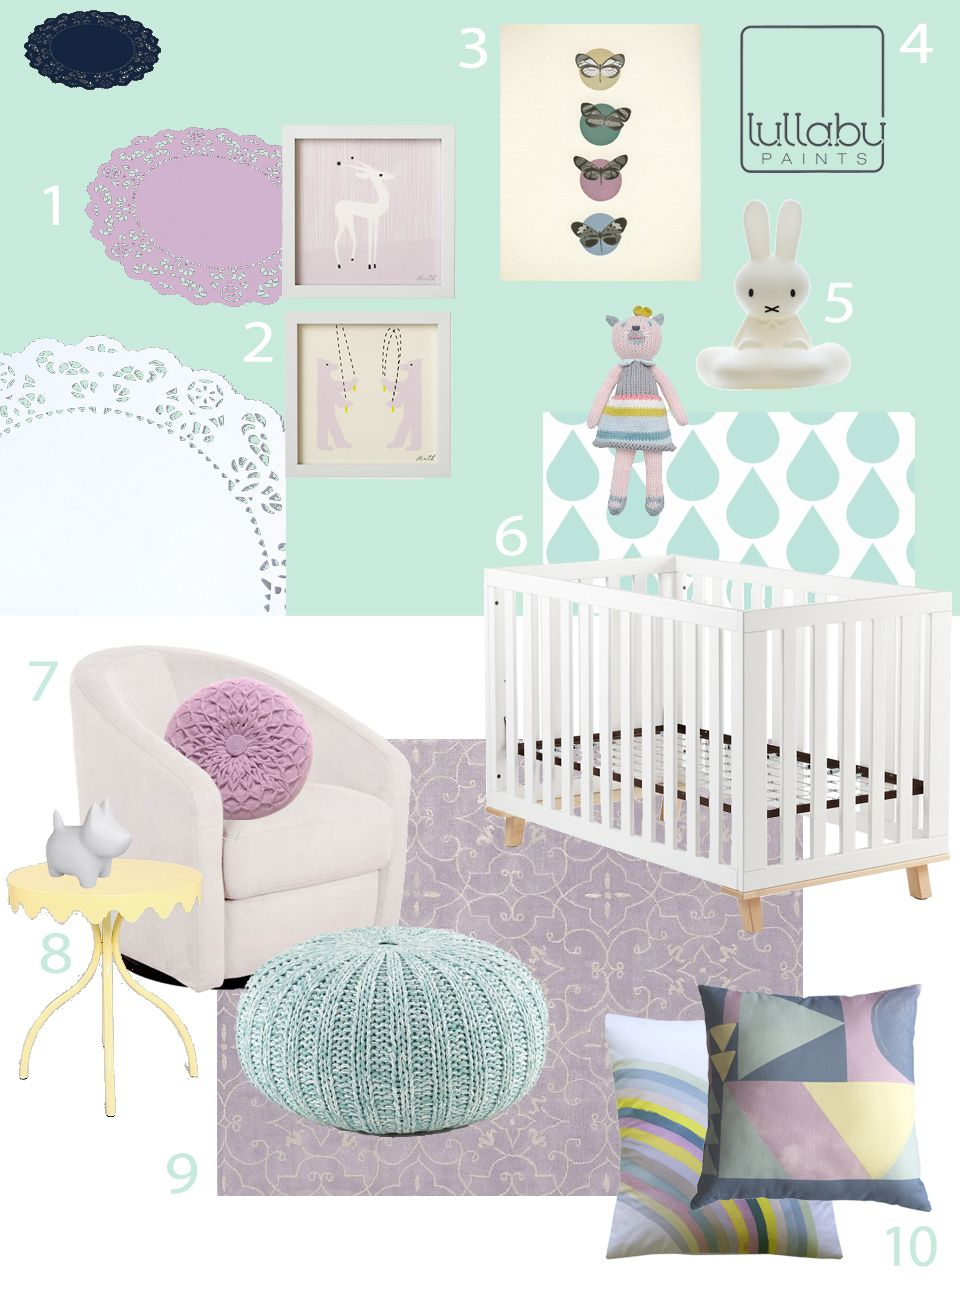 Best ideas about pastel nursery on pinterest nursery colours pastel - My Modern Nursery 68 Lovely Lilac And Mint Featuring Babyletto Madison Swivel Glider